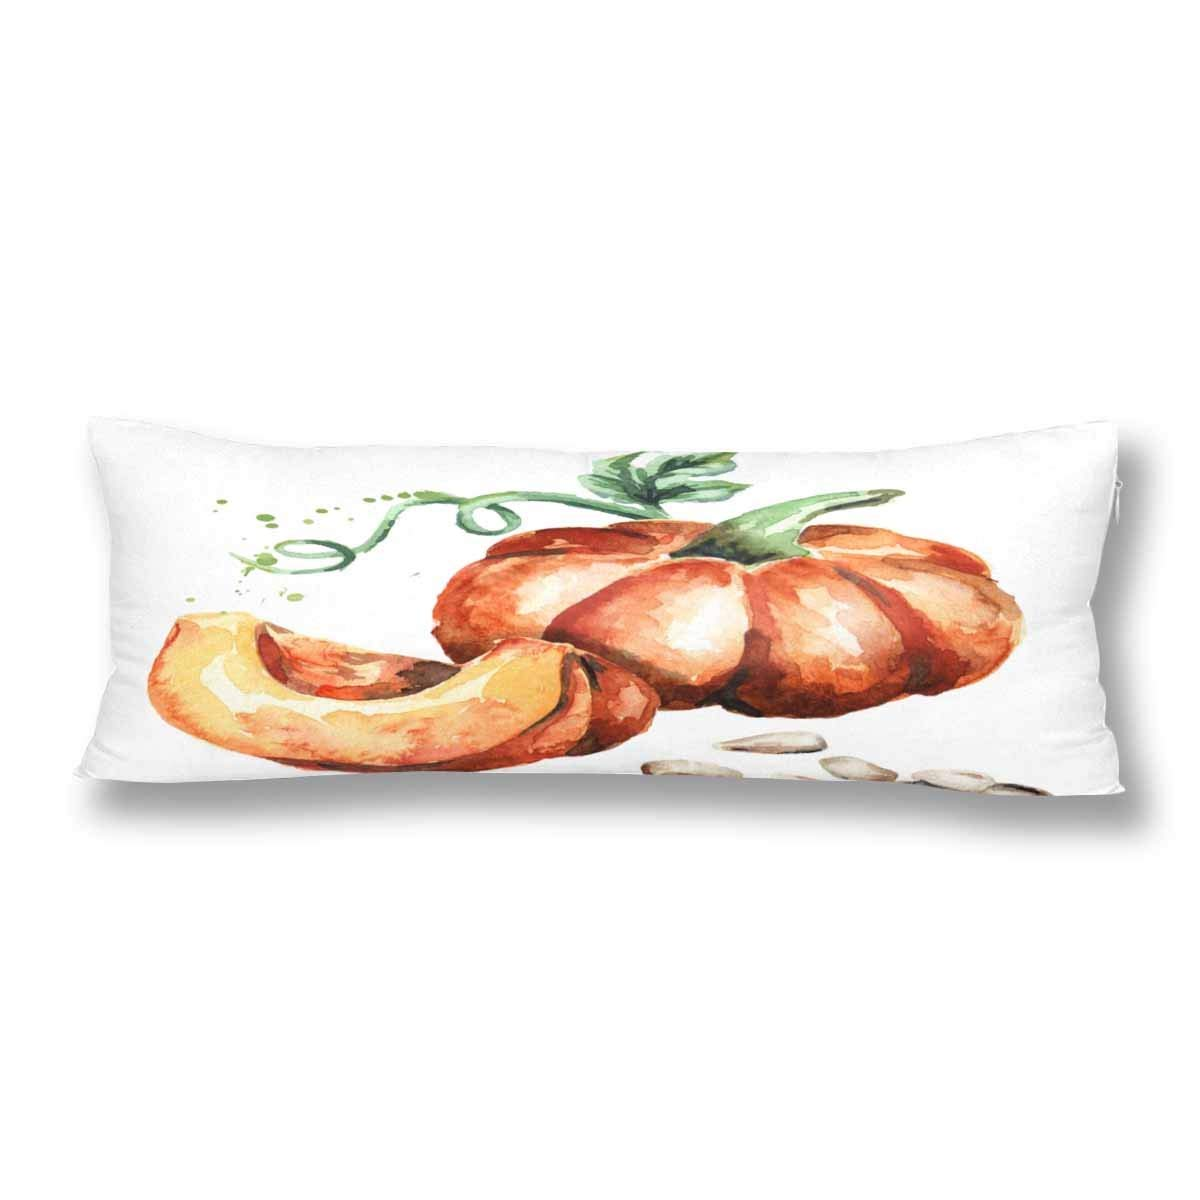 ABPHOTO Big Pumpkin with Seeds and Green Escape Body Pillow Covers Pillowcase 20x60 inch Watercolor Pumpkin Body Pillow Case Protector